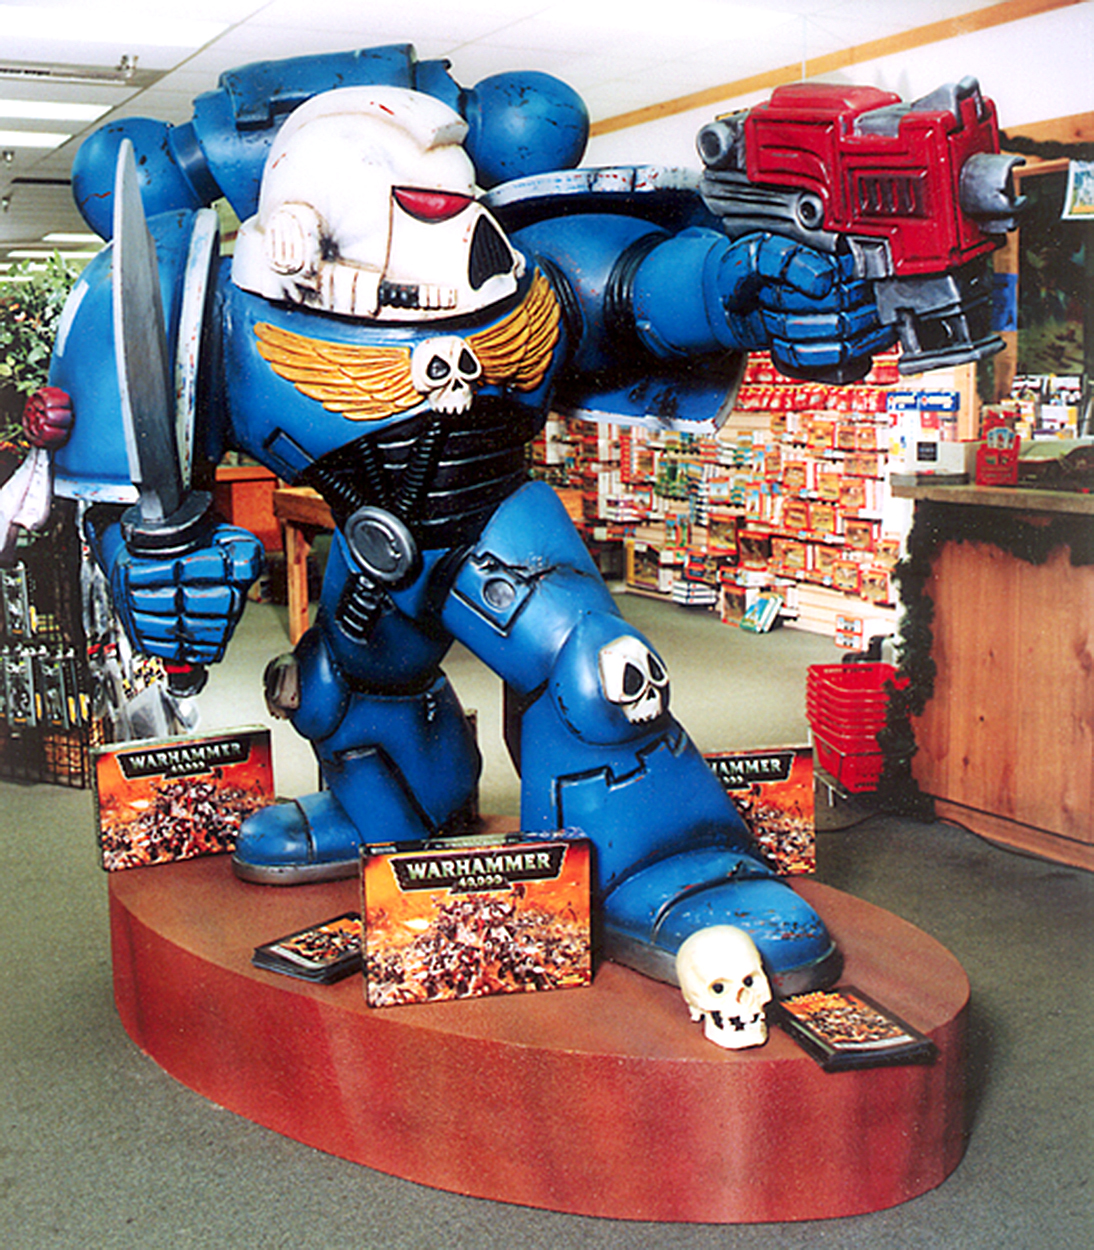 Space Marine Sculpture